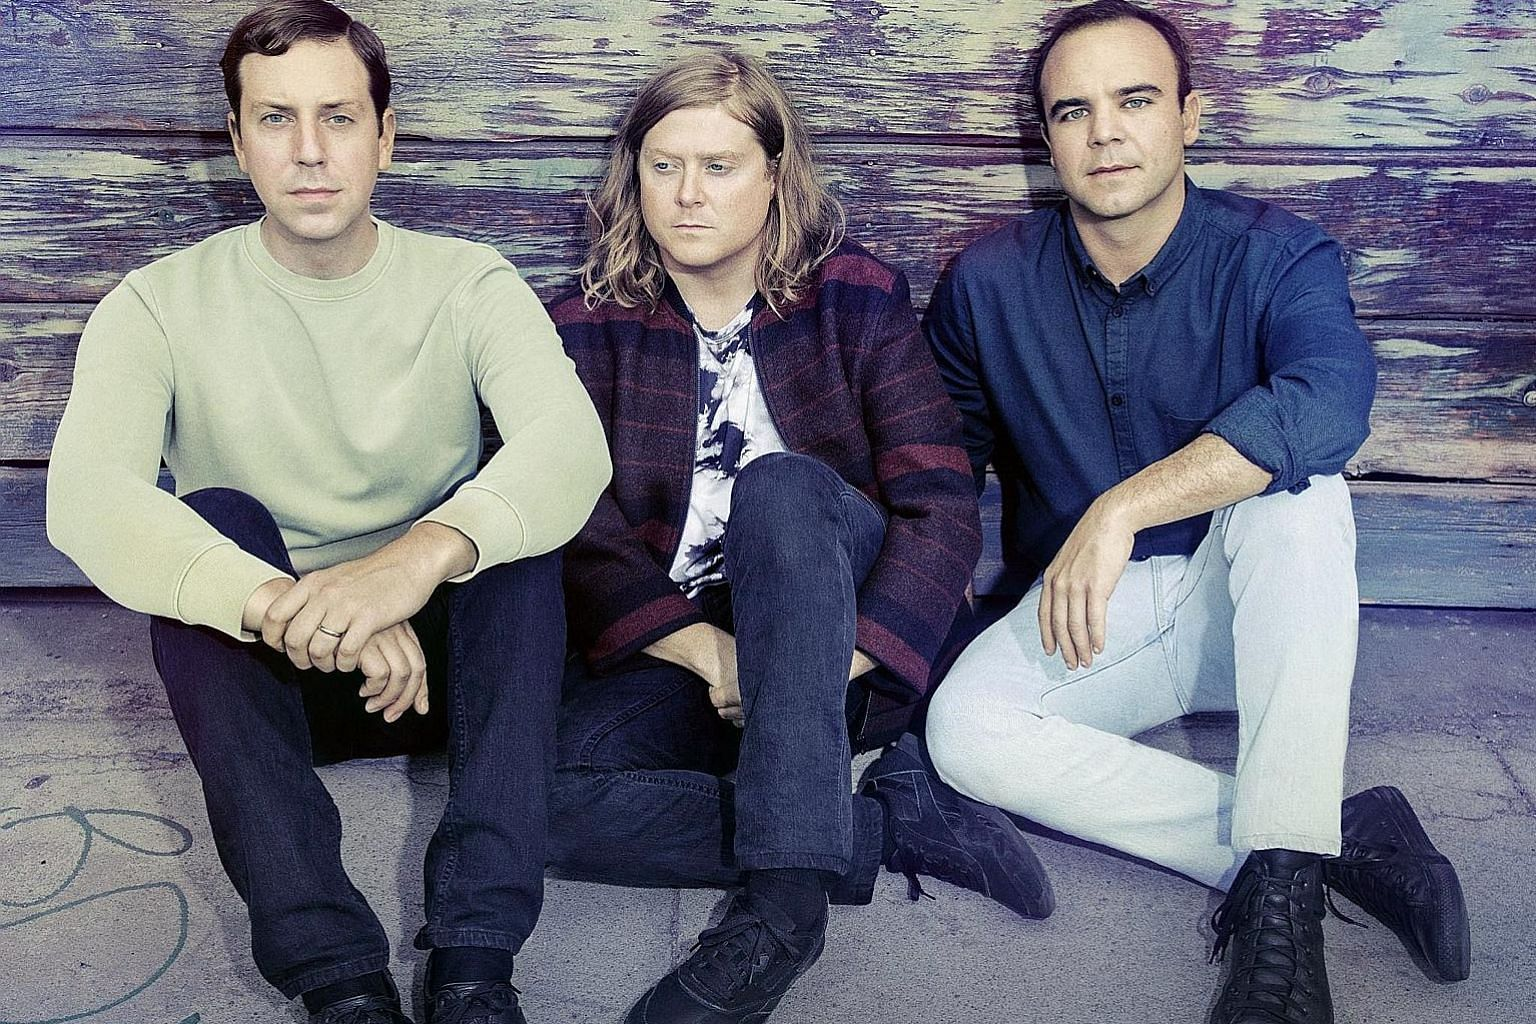 American synth-pop band Future Islands comprise (from left) Gerrit Welmers, William Cashion and Samuel T. Herring.